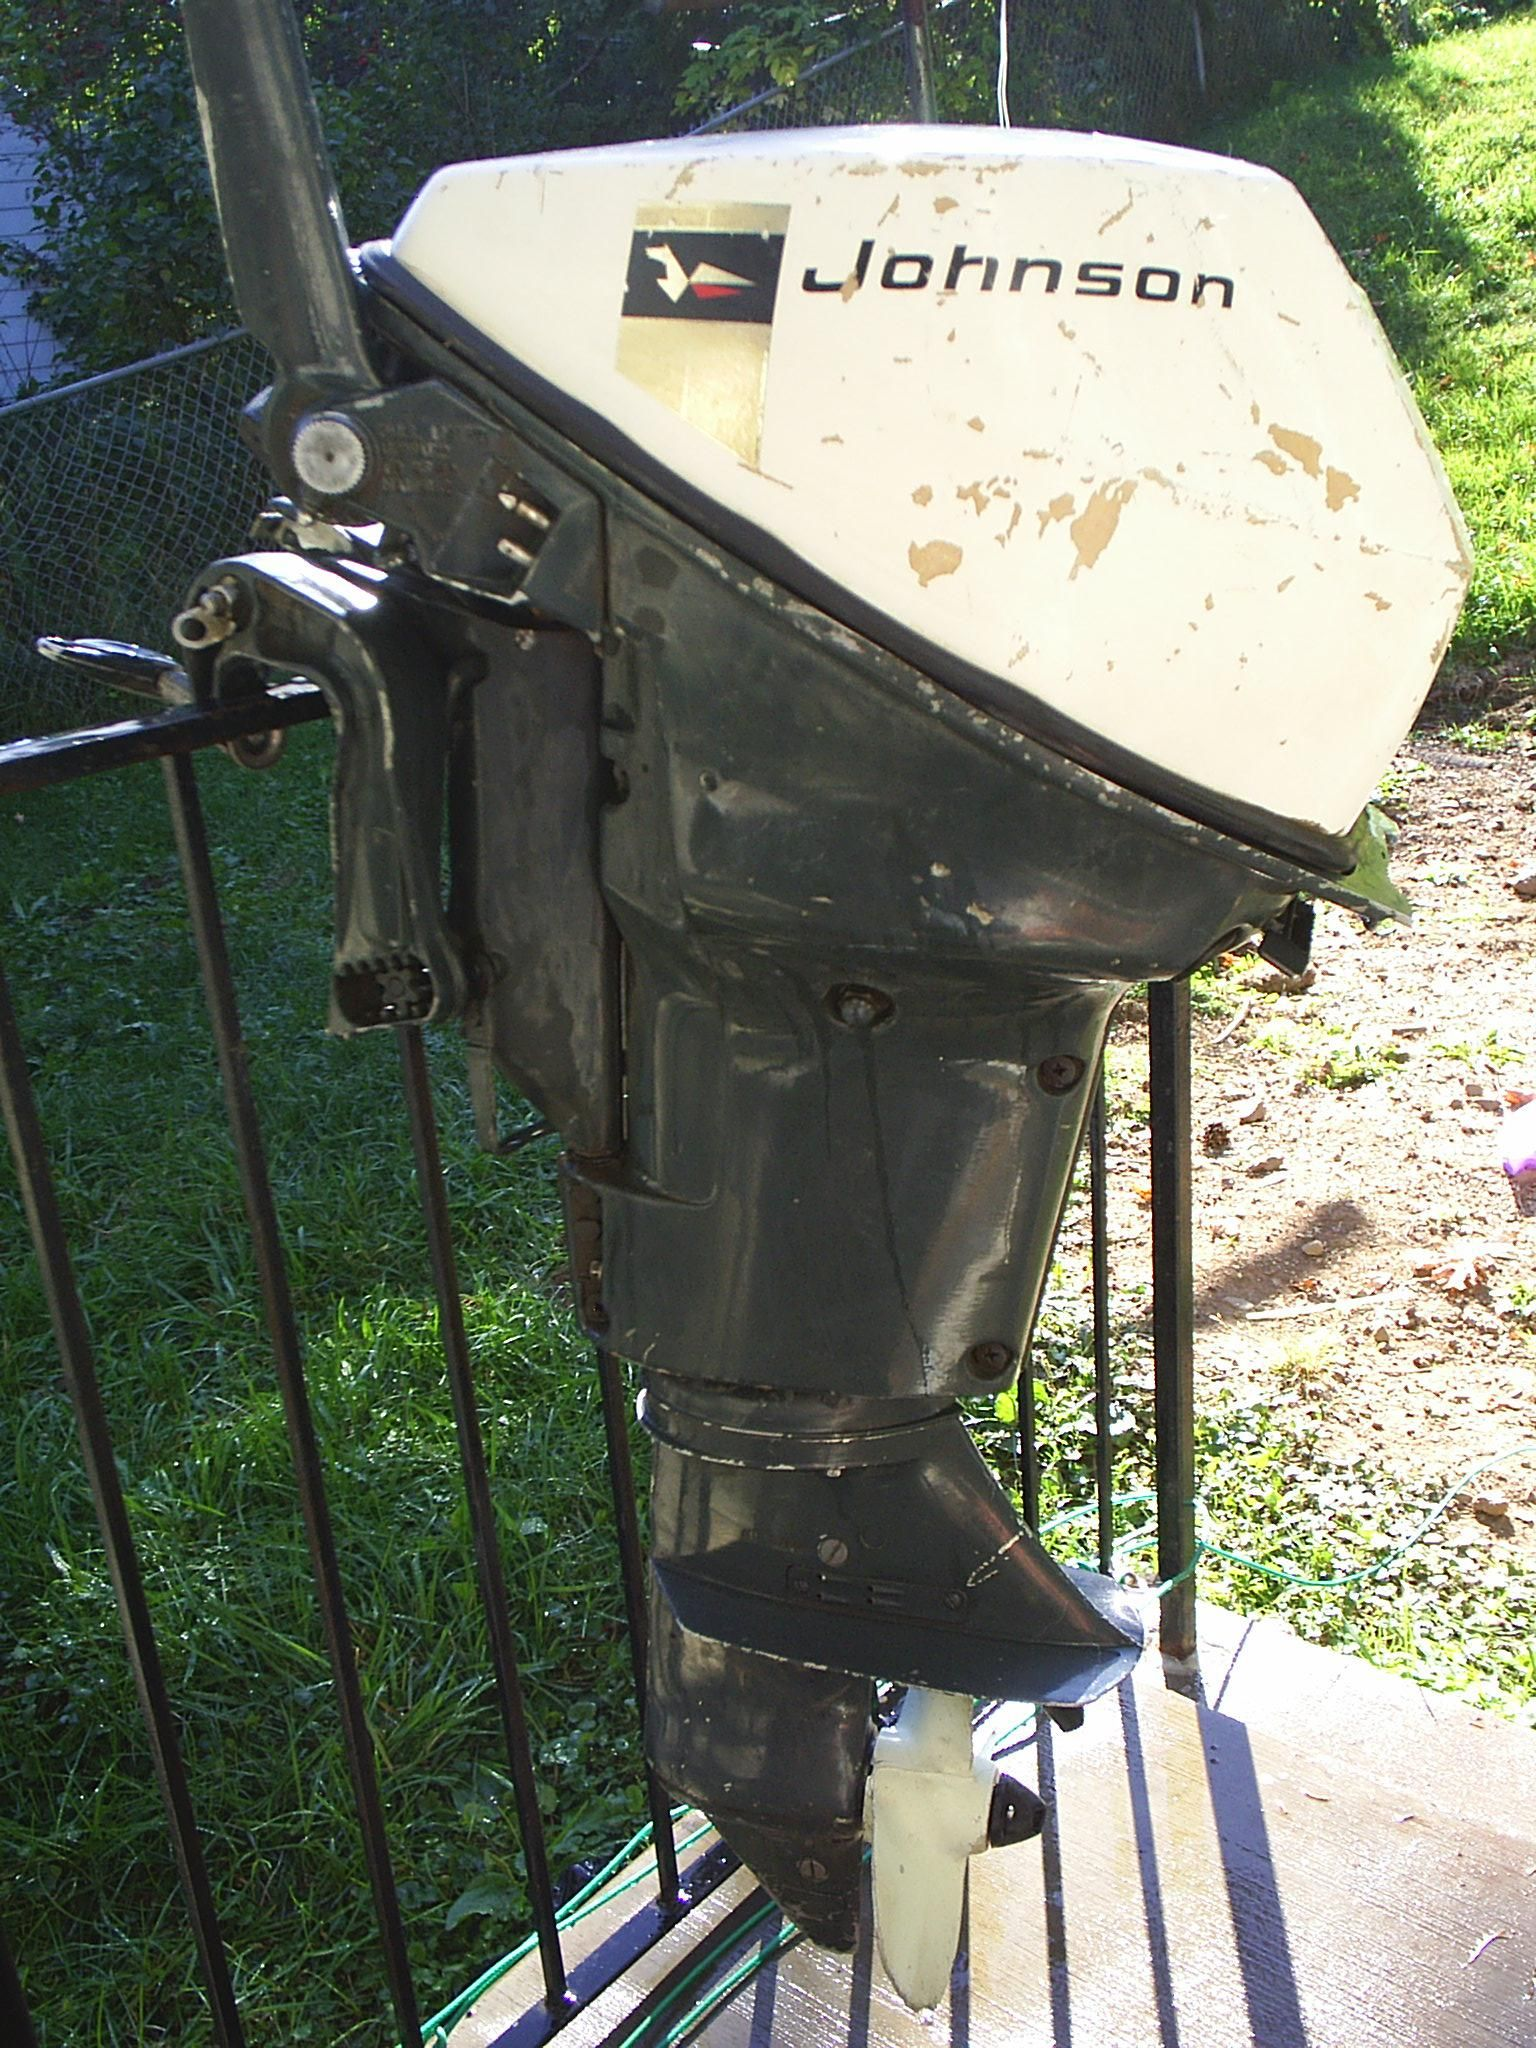 Late 60s Johnson 9 5 Hp Cool Motor Outboard Motors Water Crafts Old Boats